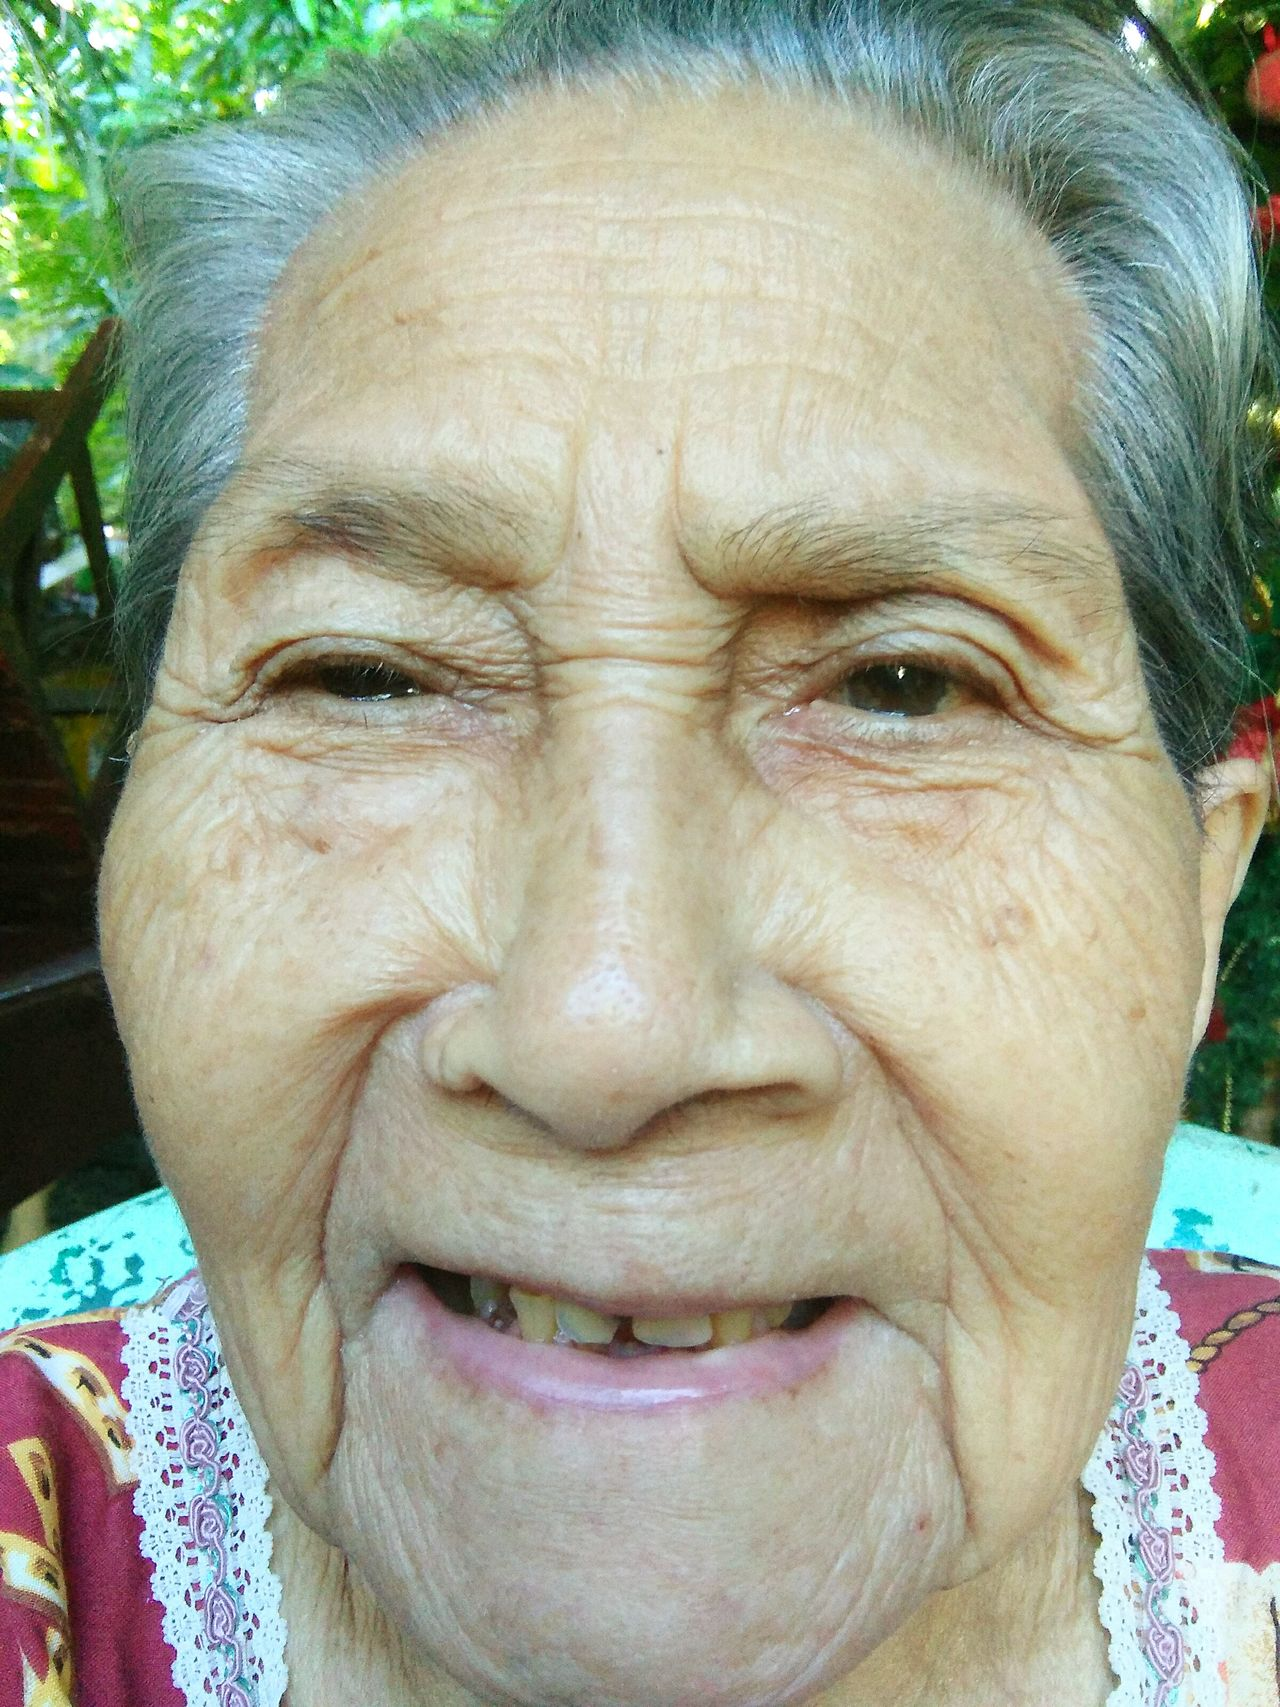 Close-up Looking At Camera Portrait Happiness Human Face Old Smiling Front View Adult Smile Grandma Old Age Woman Old Age Face Wrinkled Face 92 Years Happy Face Contented Life White Hair Old Face Old Happy Lady